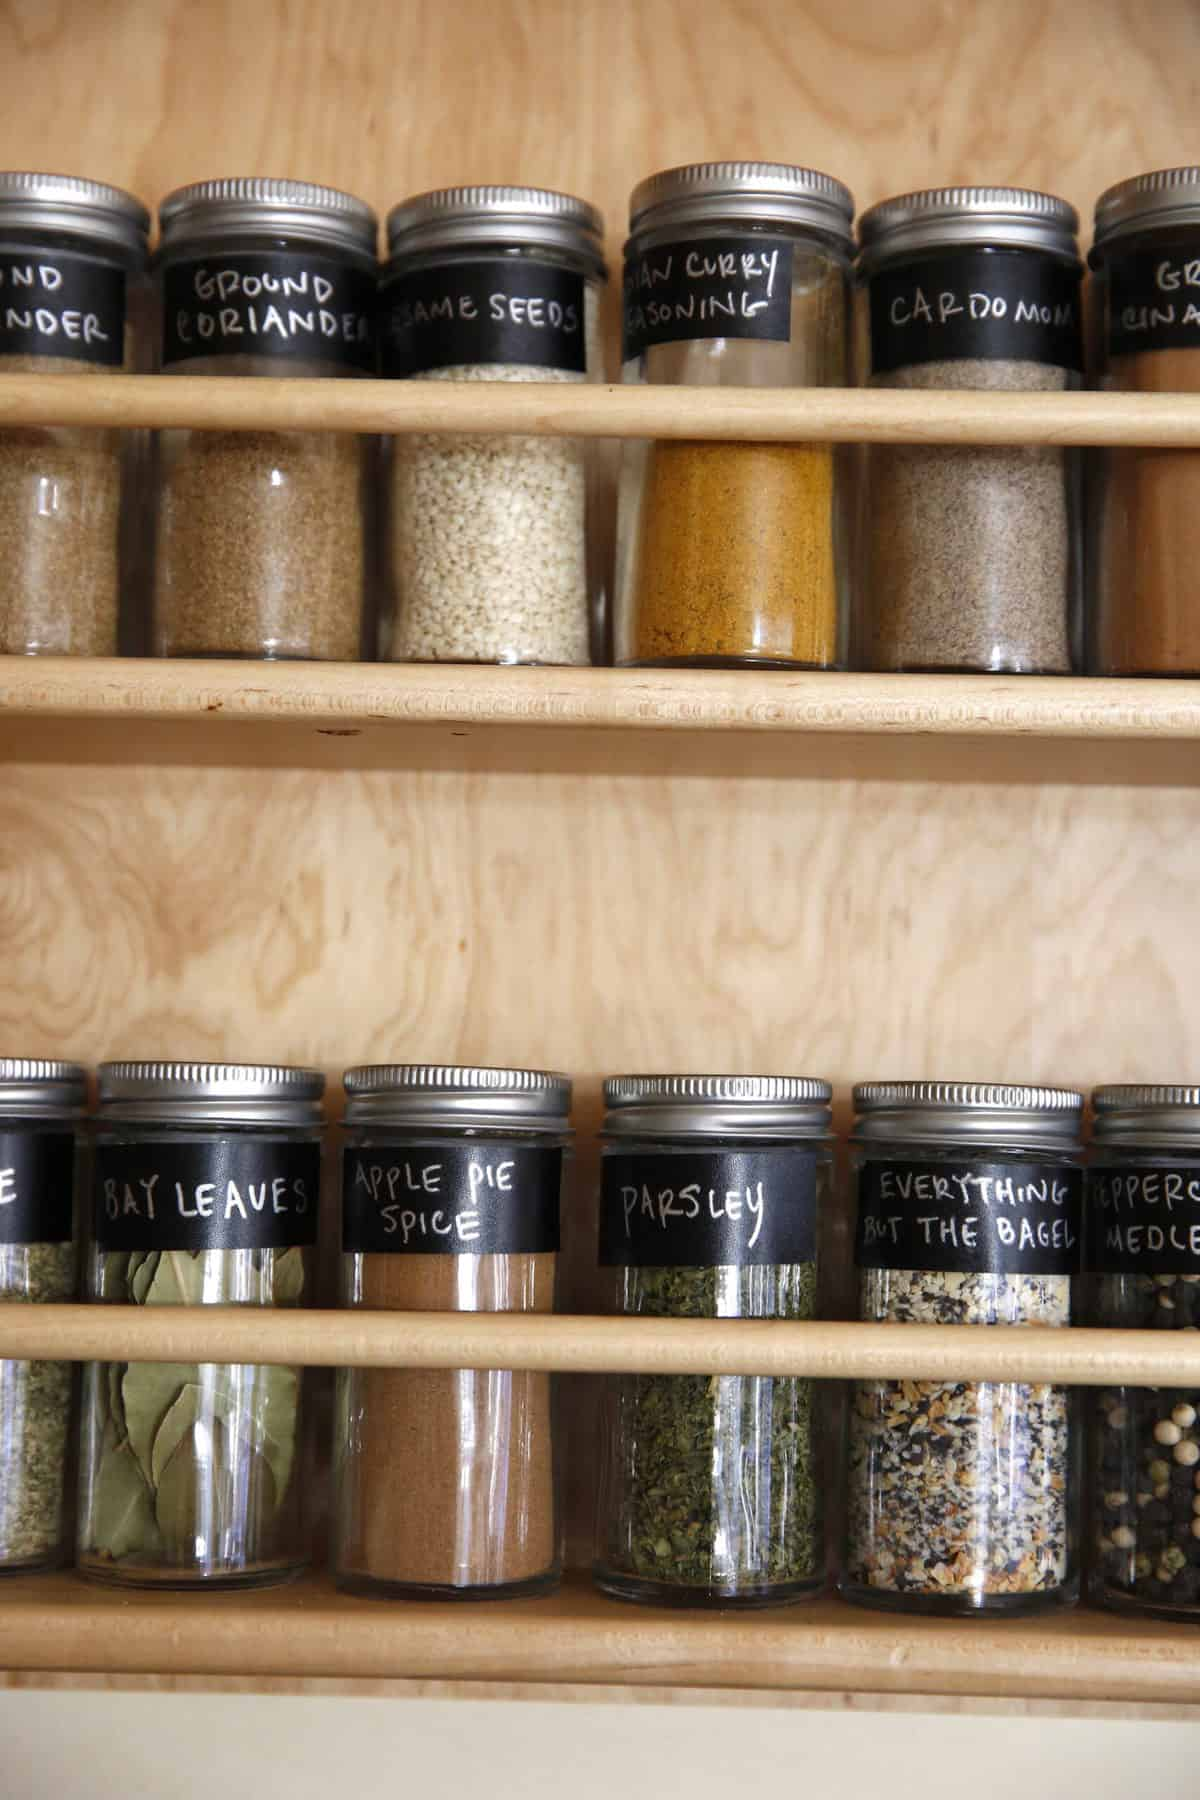 Storing spices in jars with labels.